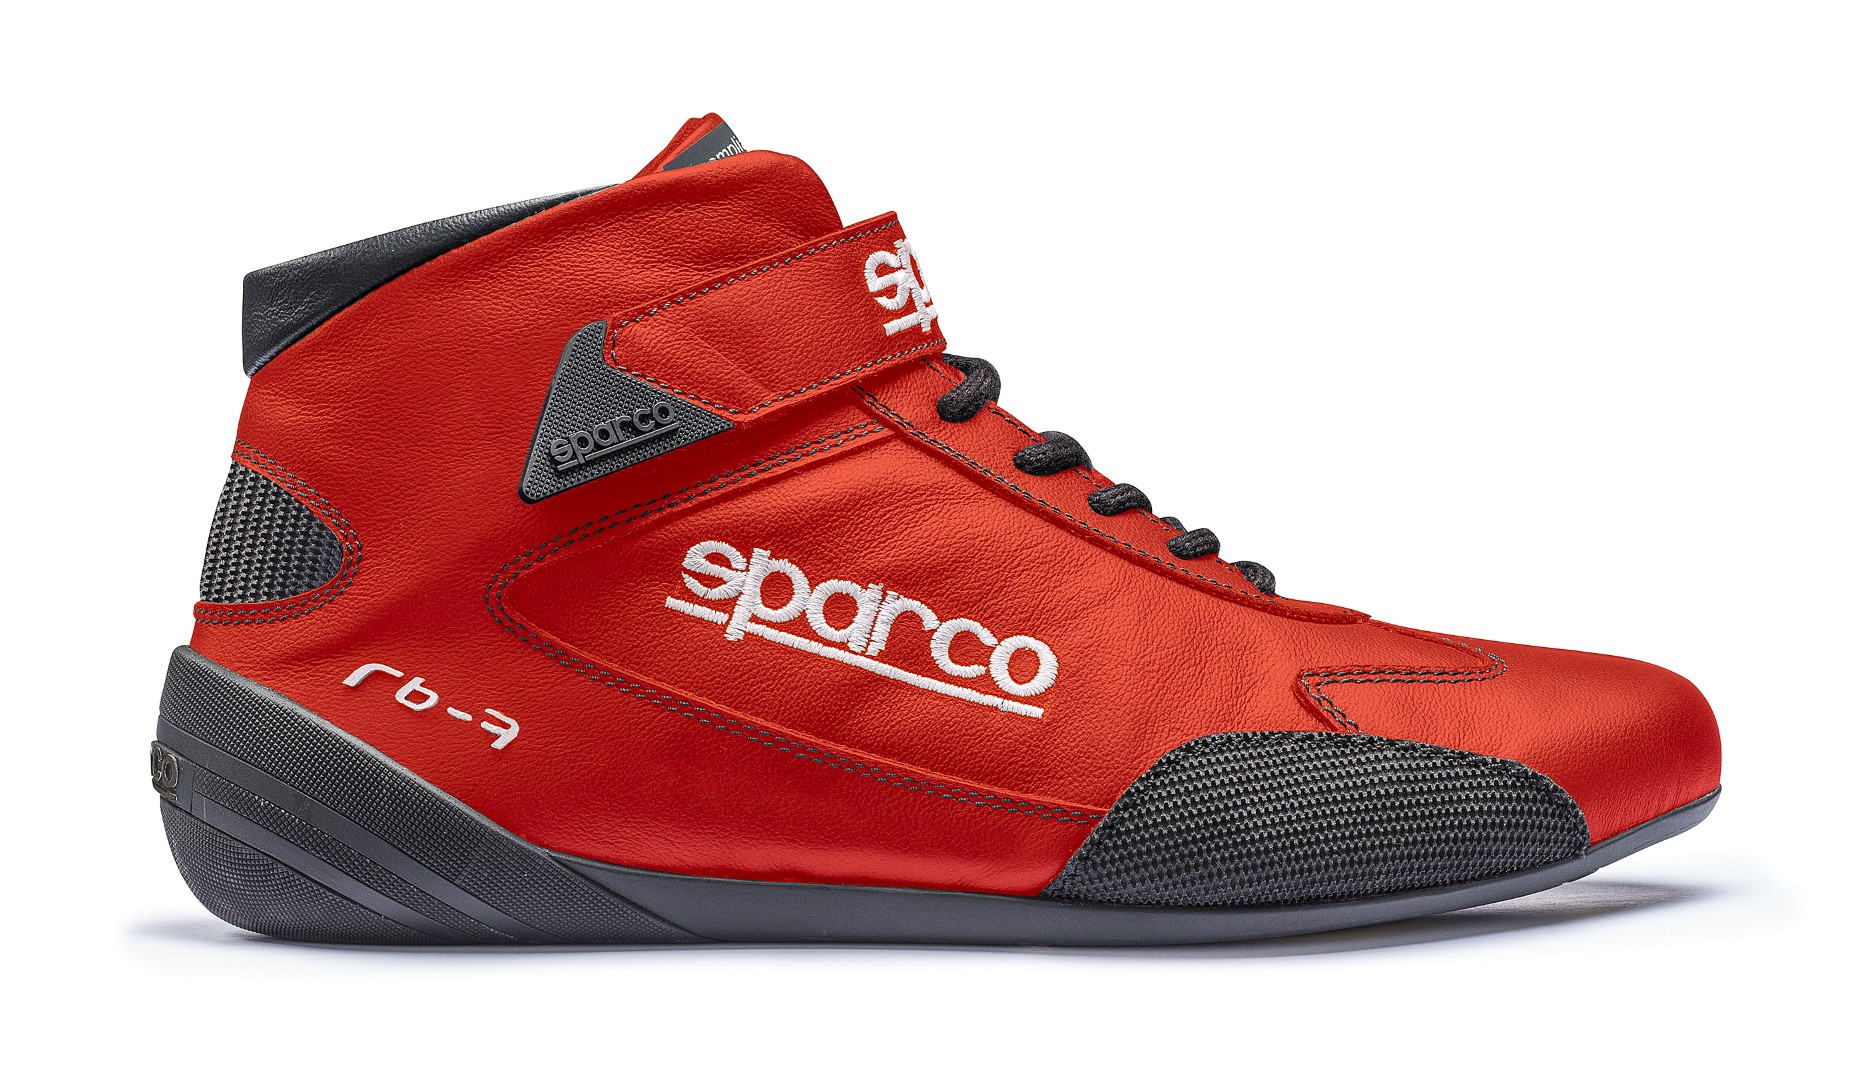 Sparco Red Cross RB-7 Driving Shoes EU 45 | US 11.5 - 00122445RS